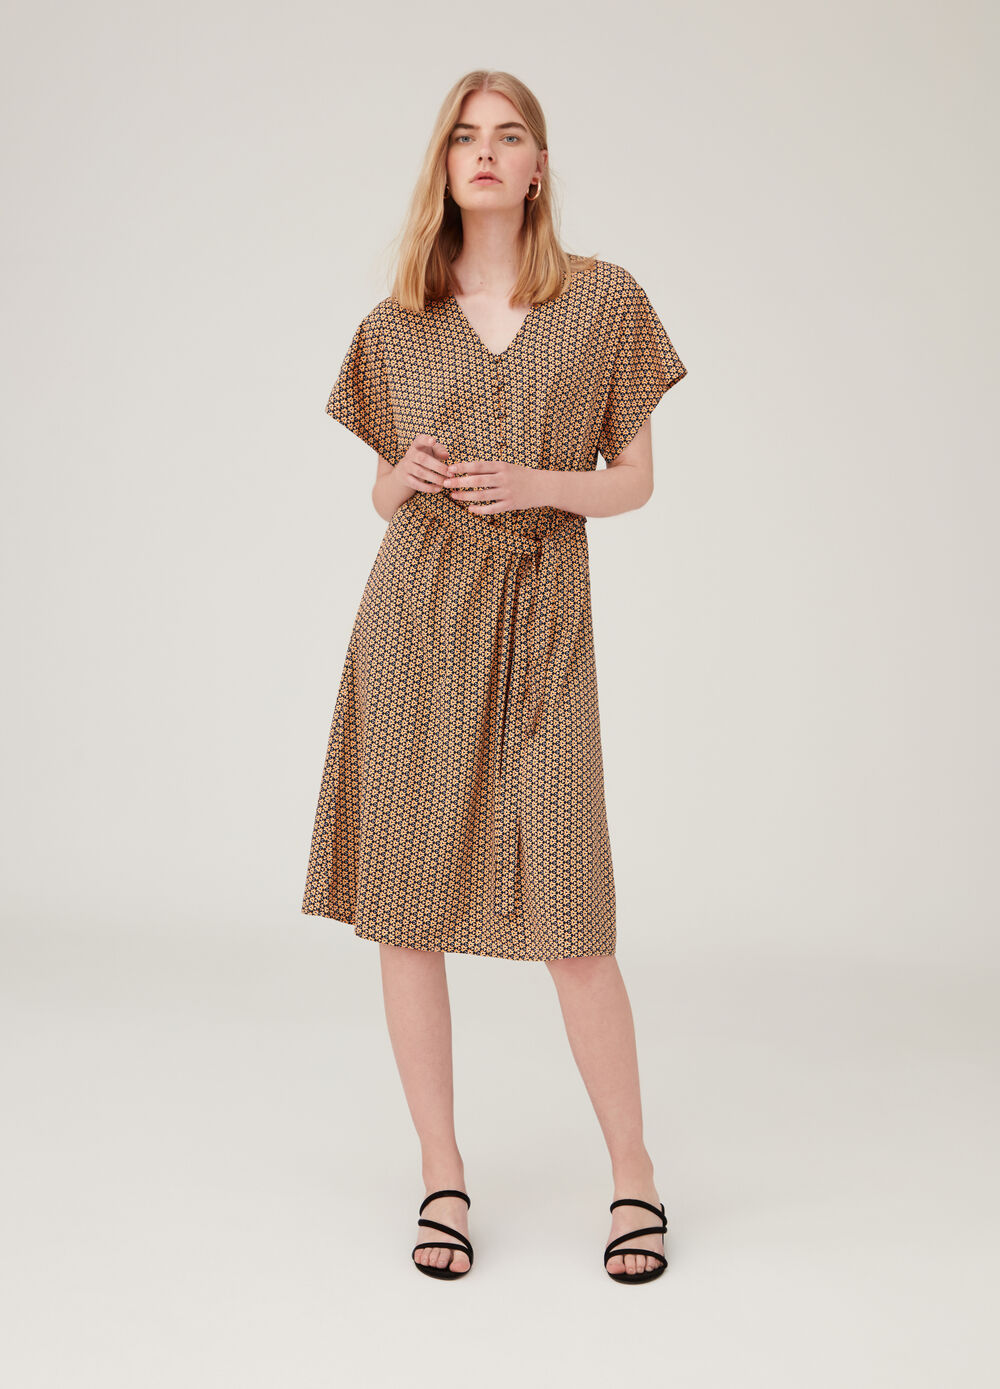 Dress with batwing sleeves and pattern